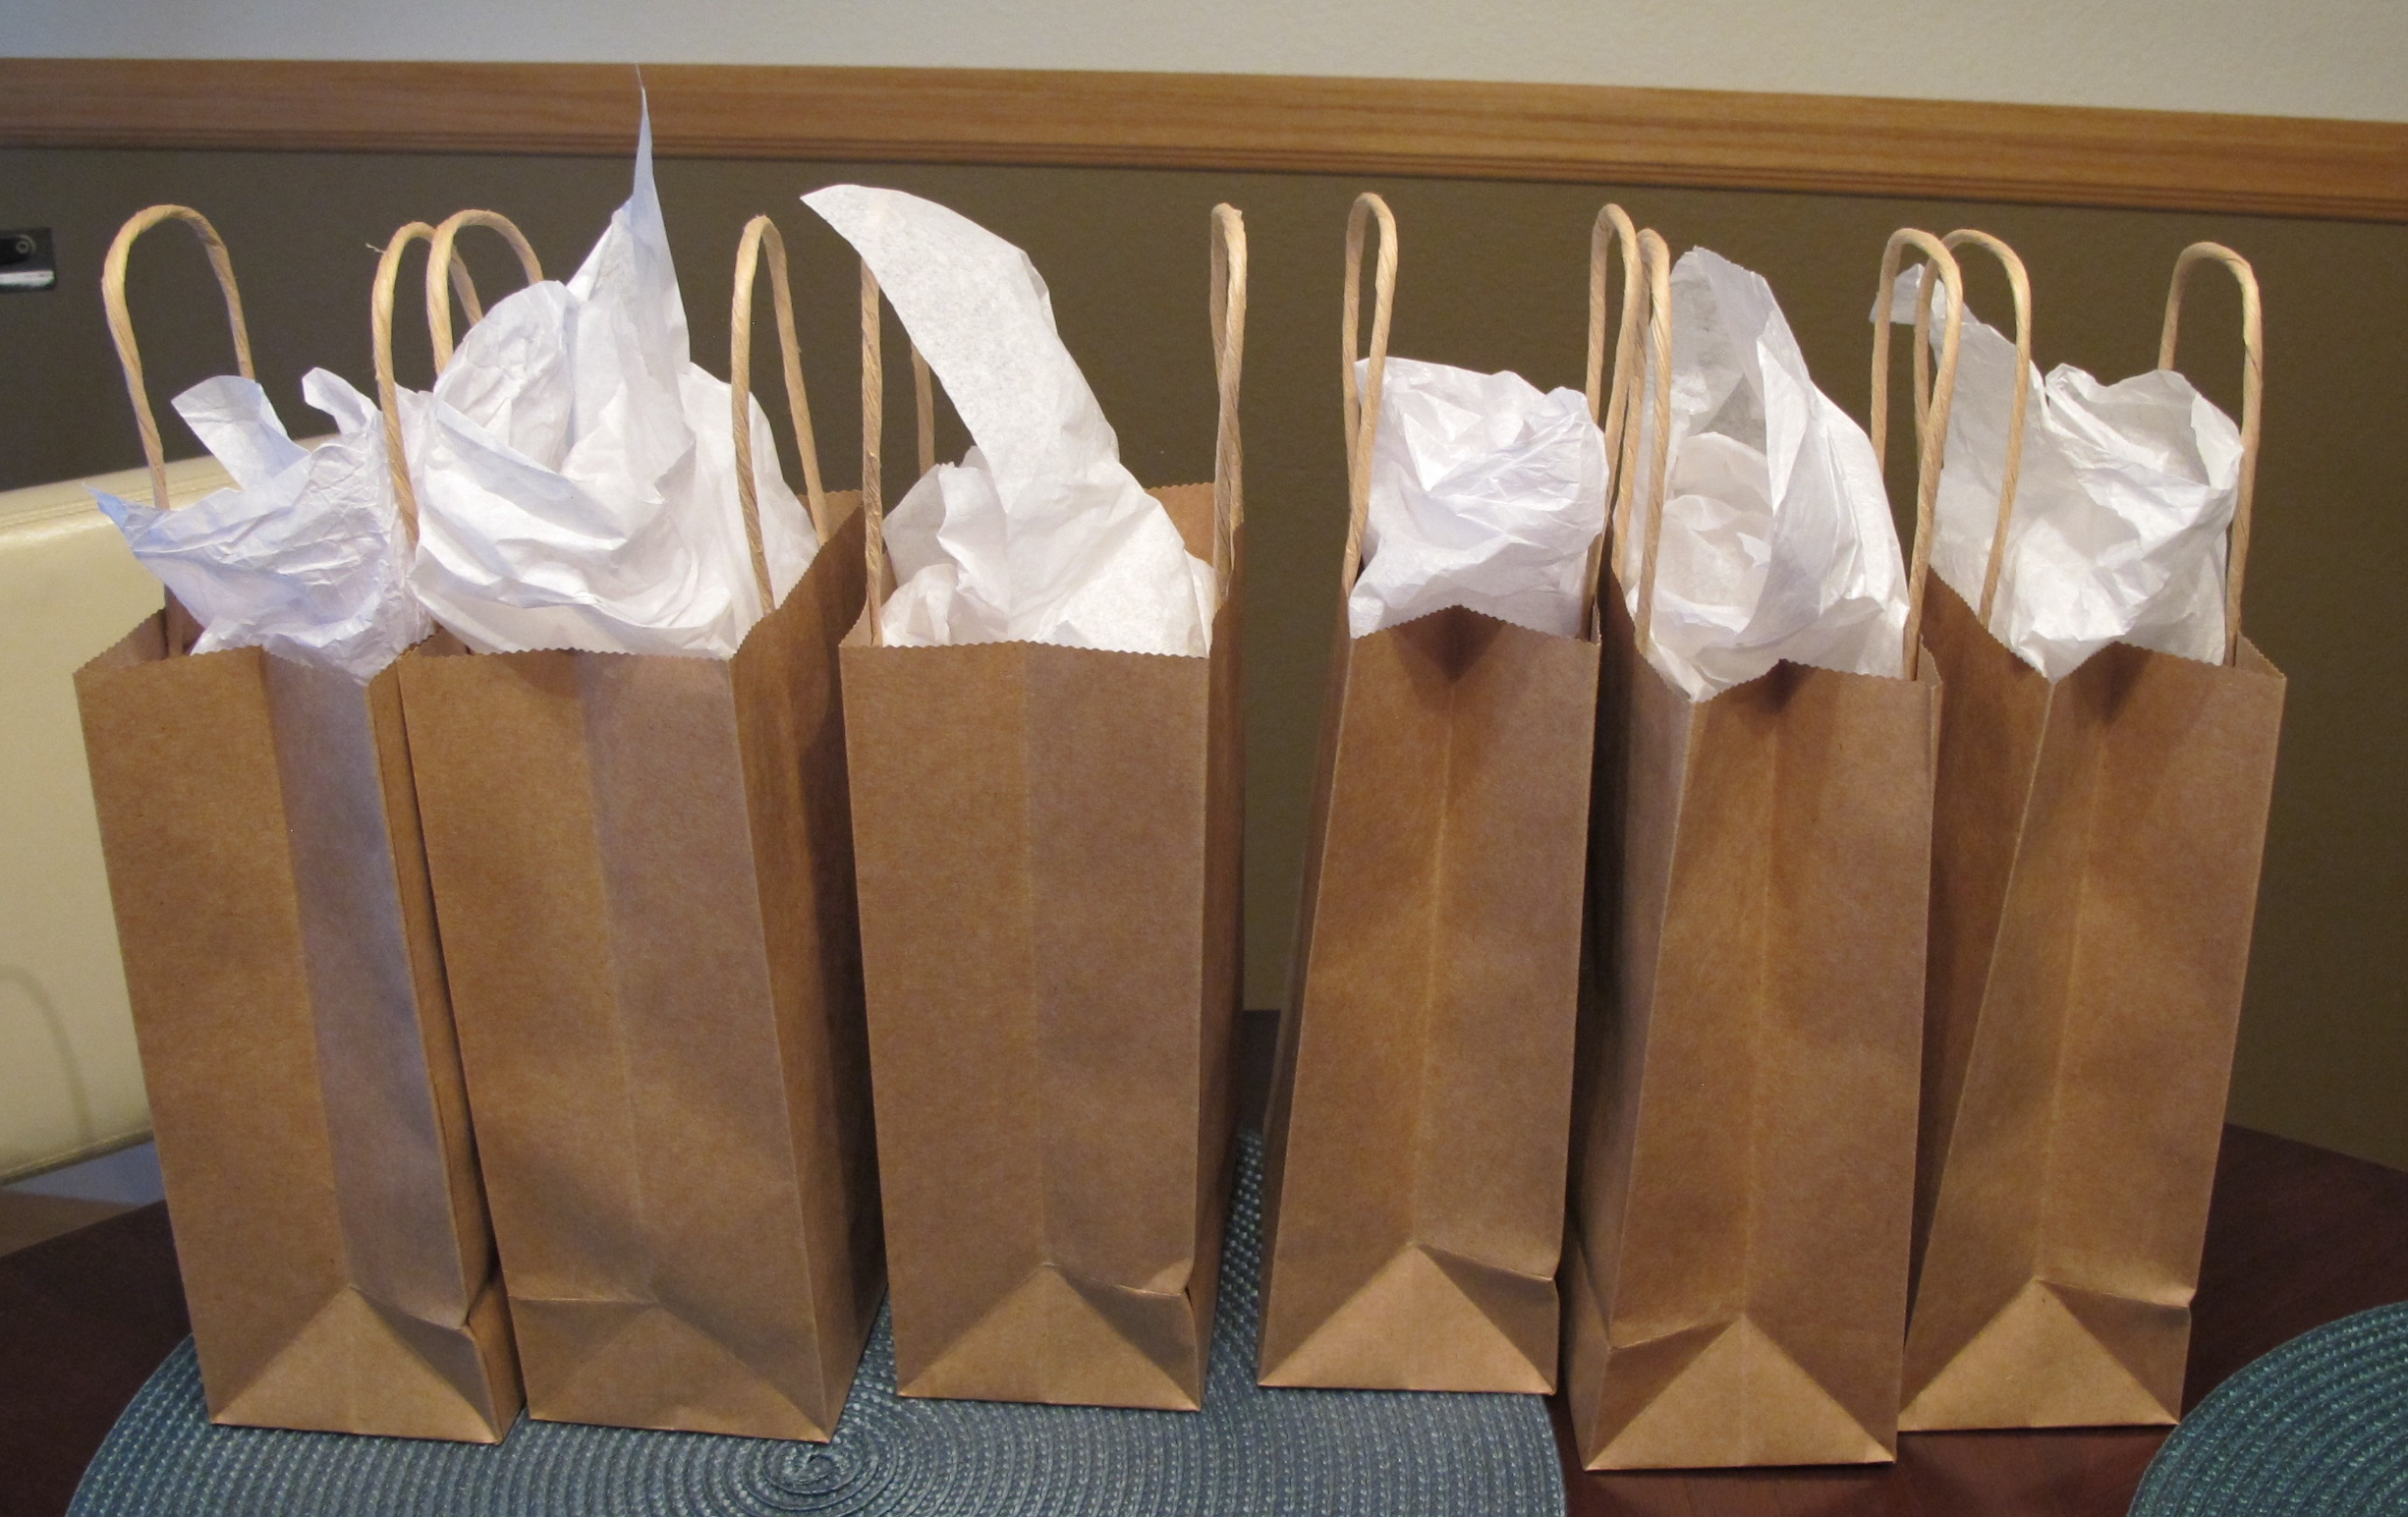 All of the artists participating in ELEVATE received gift bags at meeting #3. surprise!